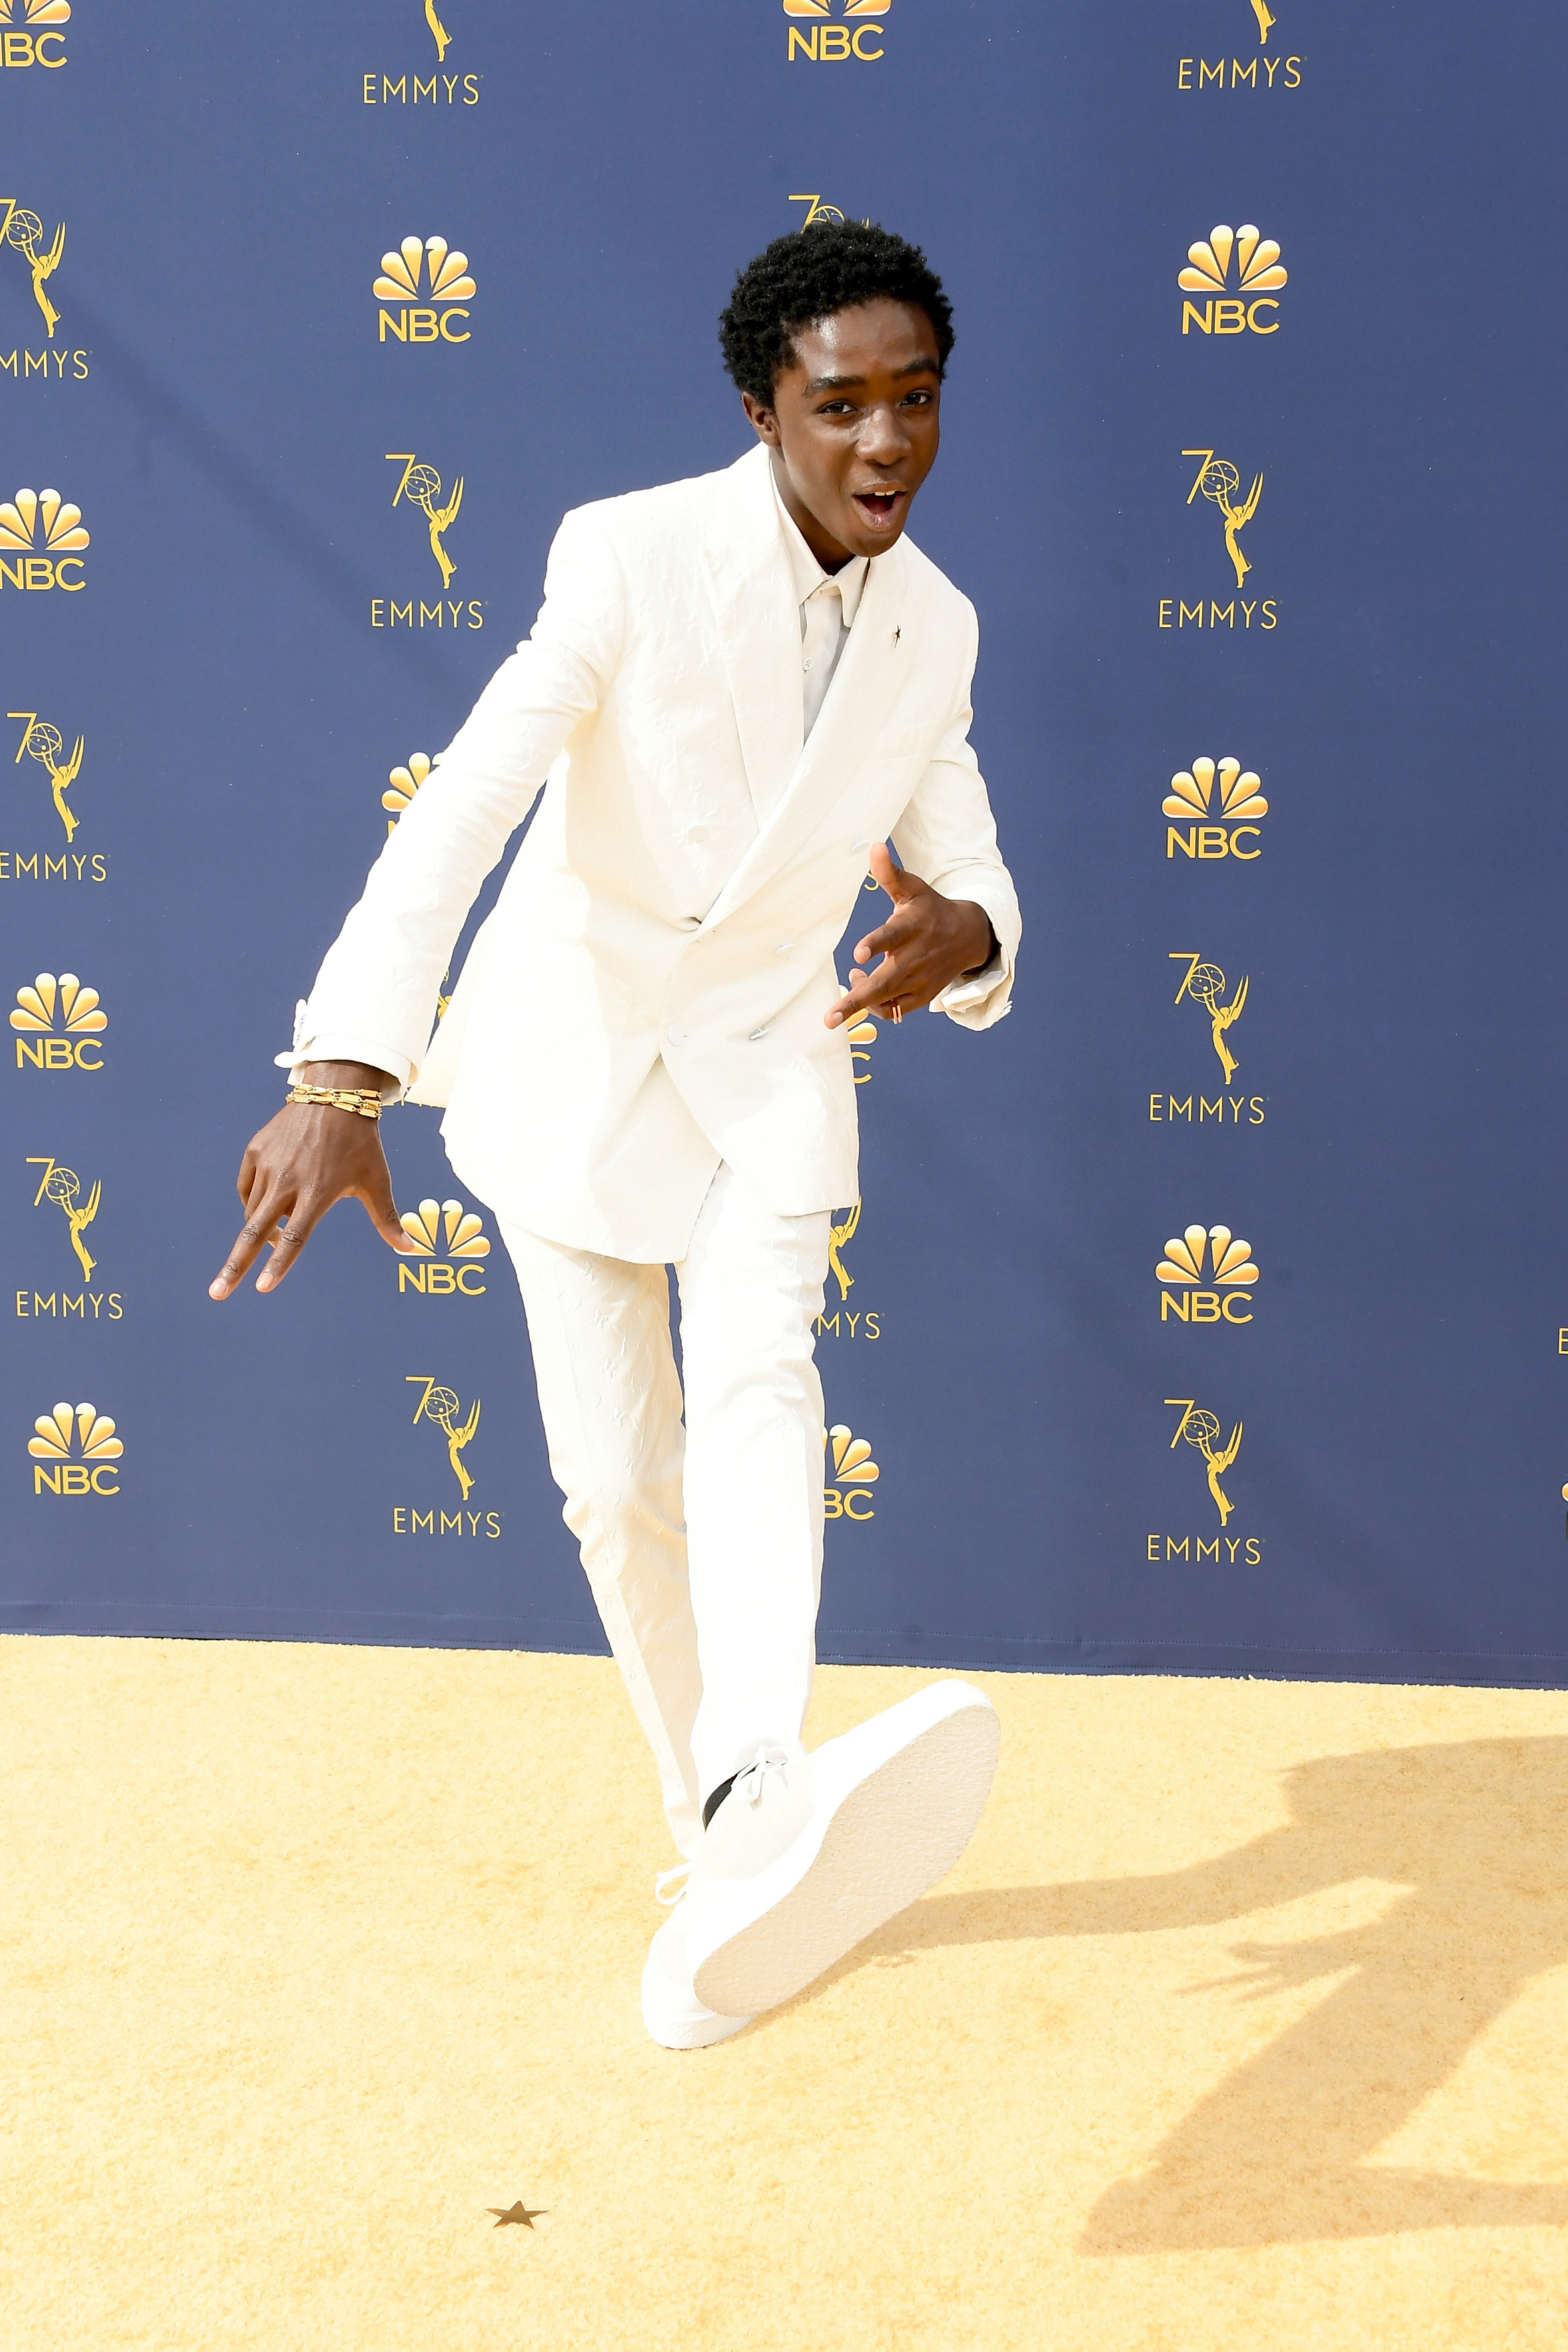 Caleb is wearing a head-to-toe monochromatic white suit at the Emmys.